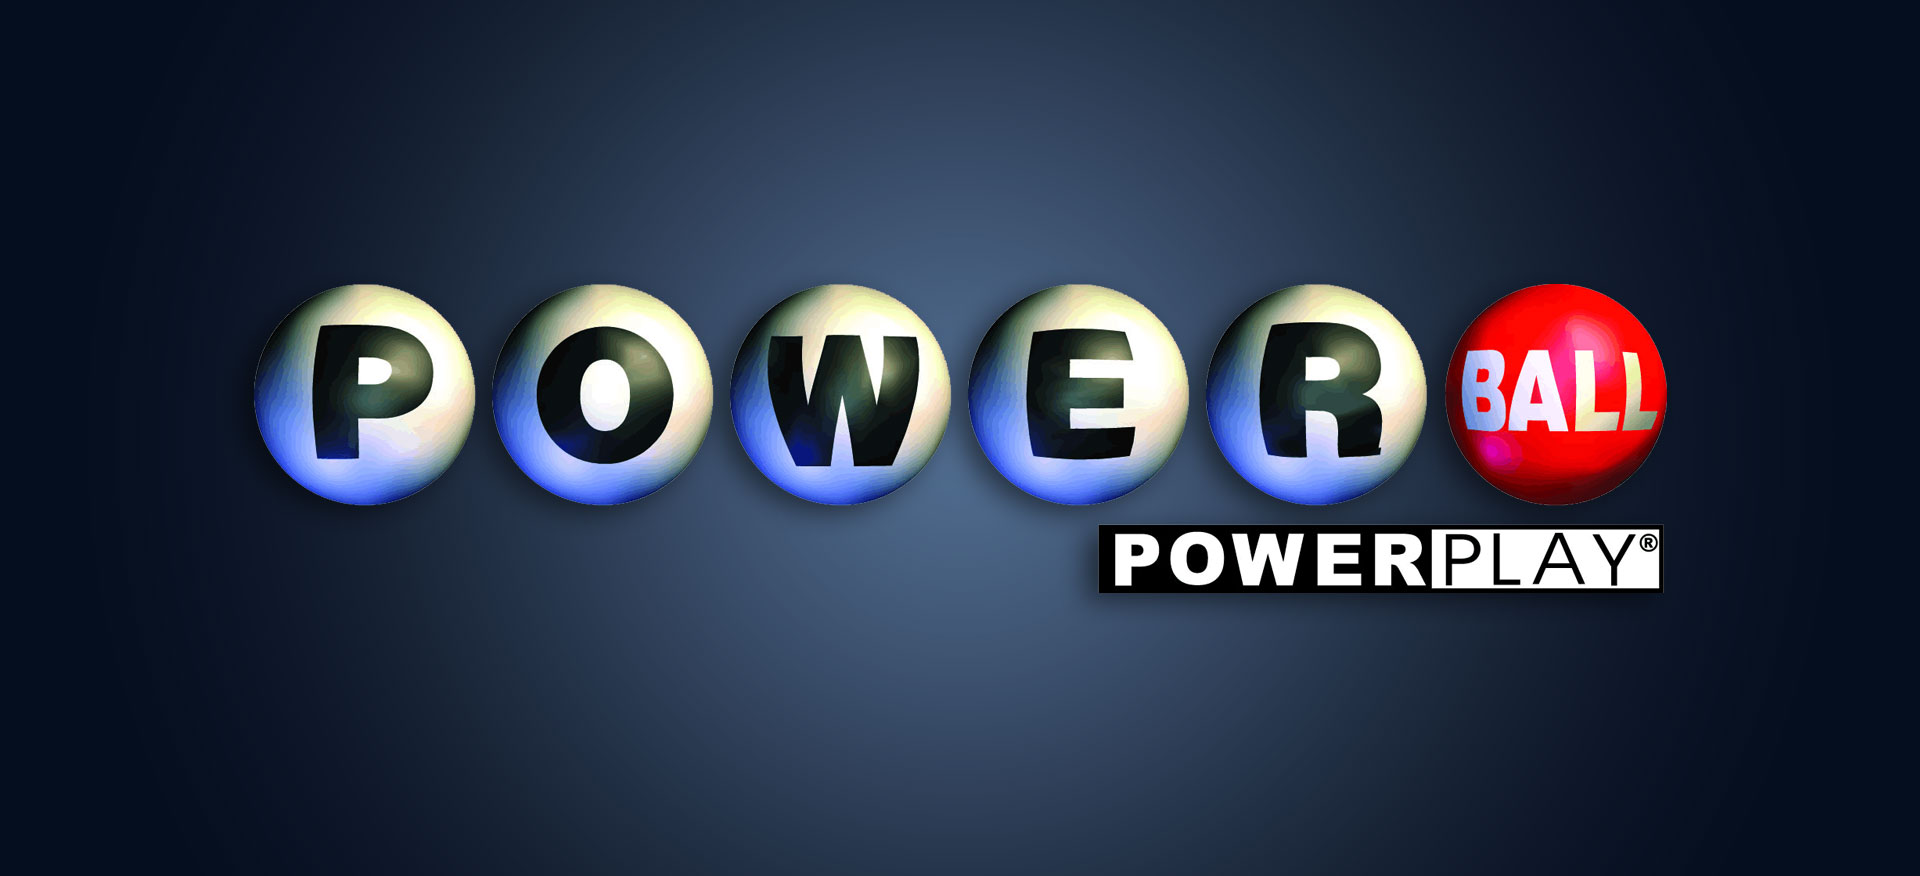 ohio powerball numbers photo - 1